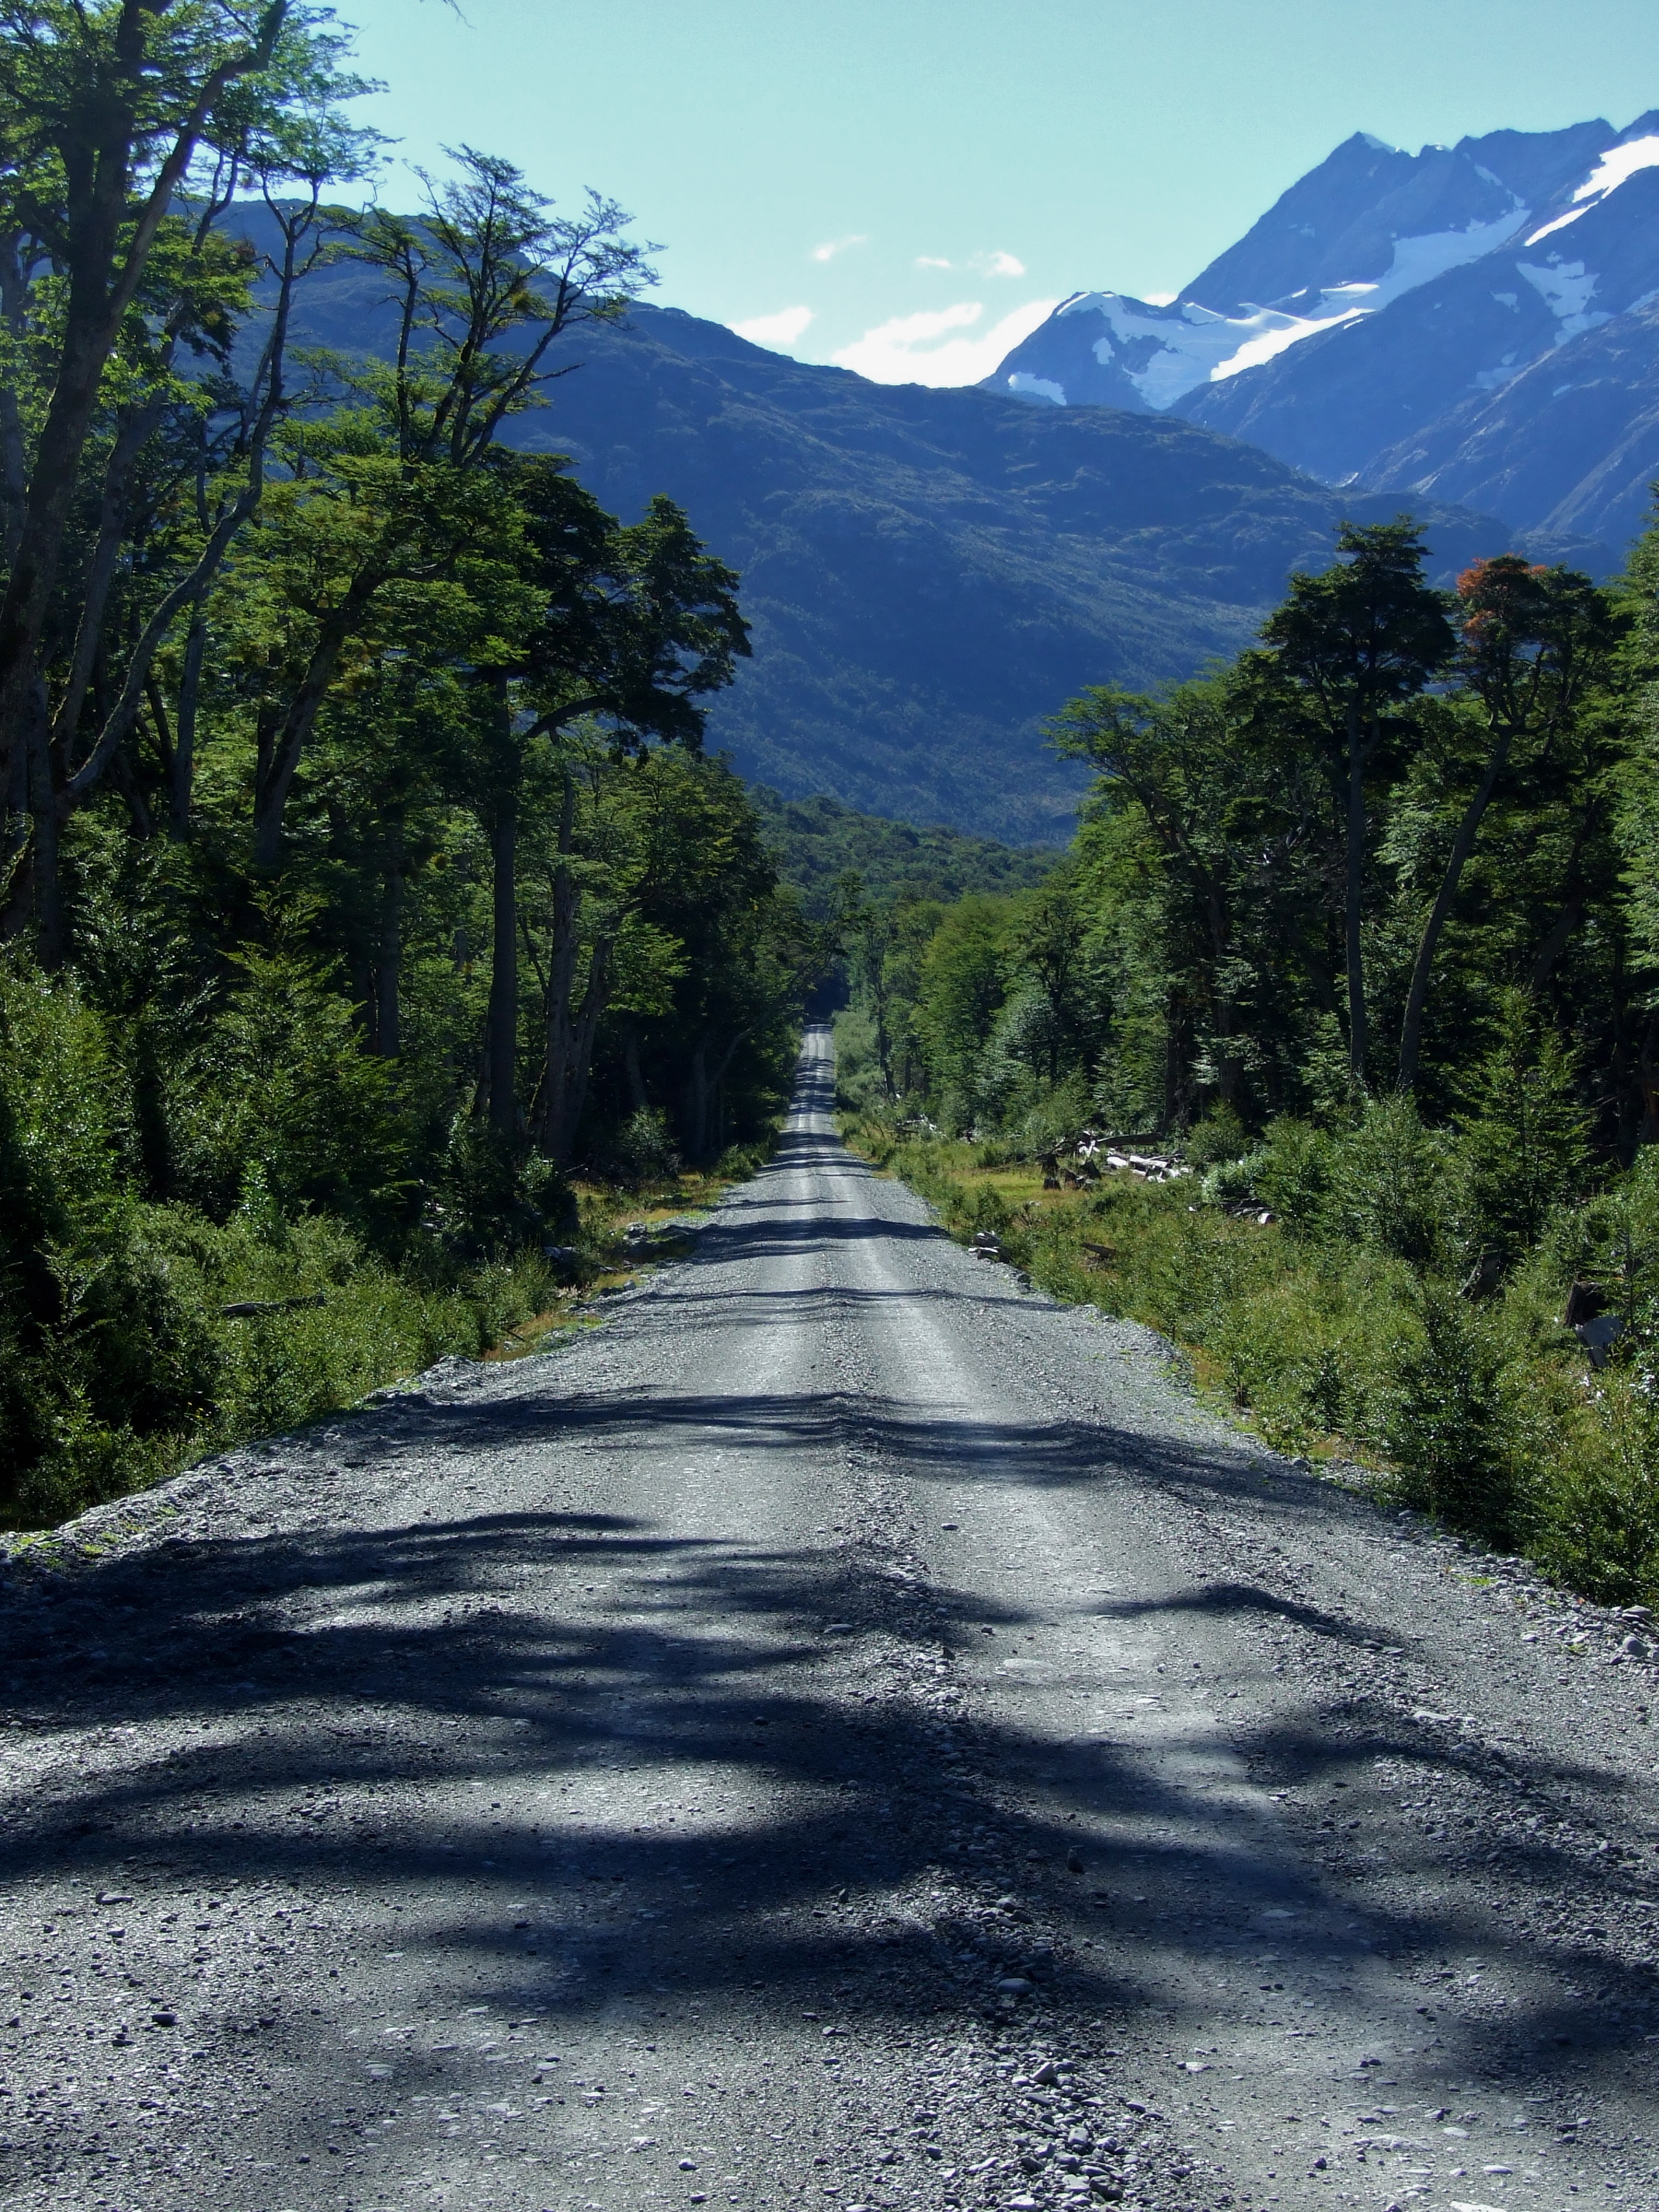 mighty_carretera_austral